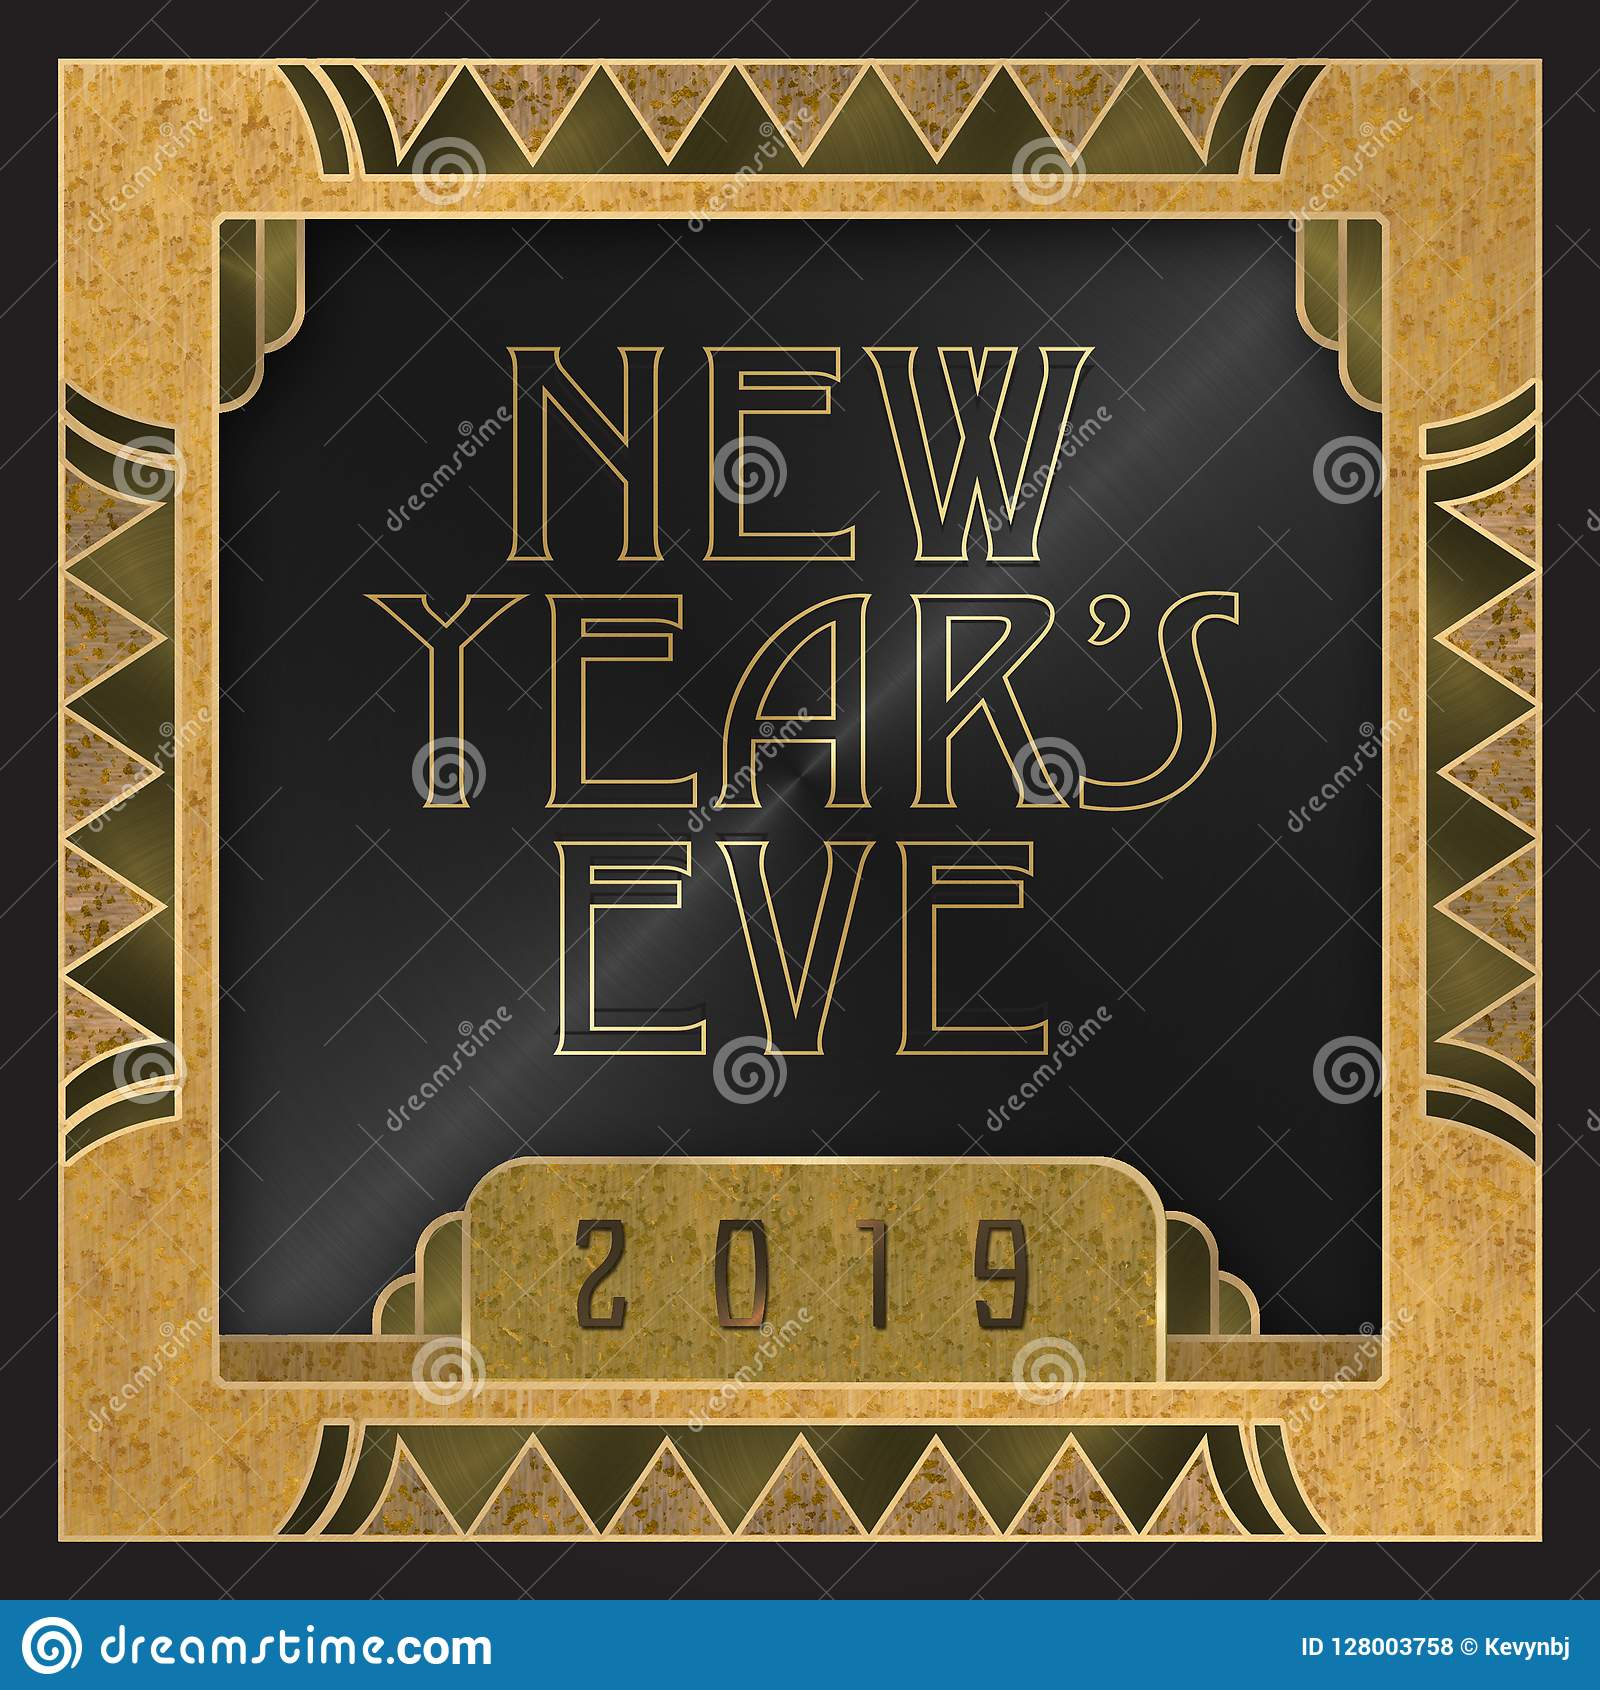 new years eve party invitation 2019 art deco style